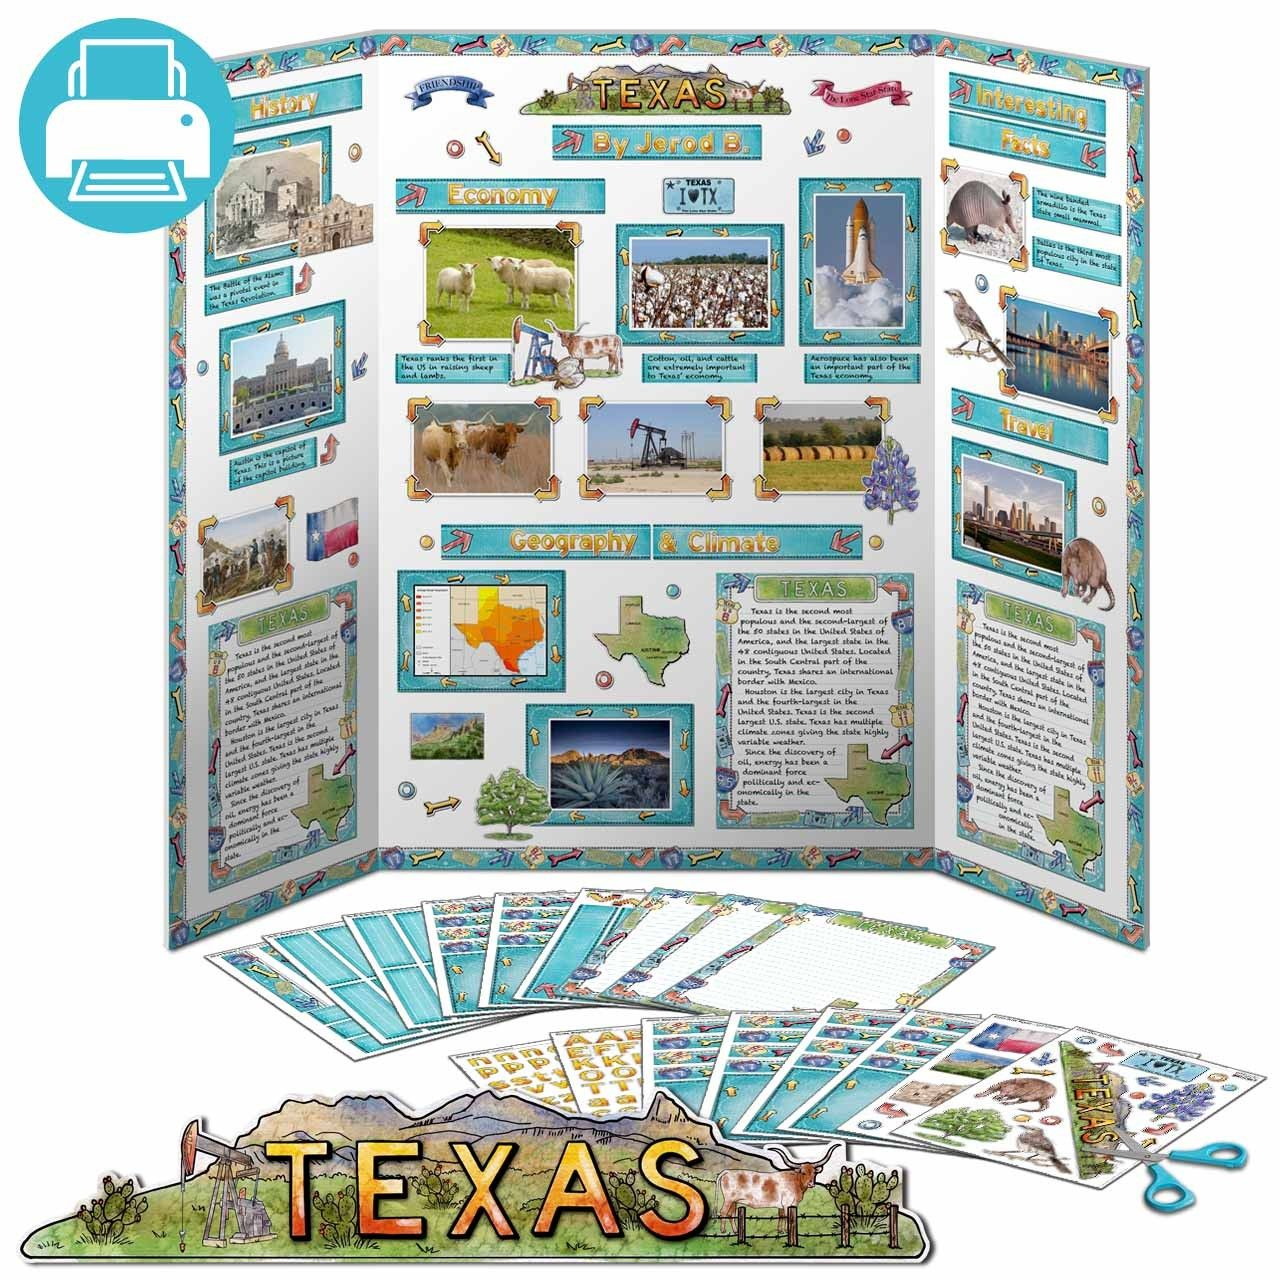 Poster design ideas for school projects - Print Instantly Decorations For A Texas State Report Poster Board Instantly At Home Printable Kit